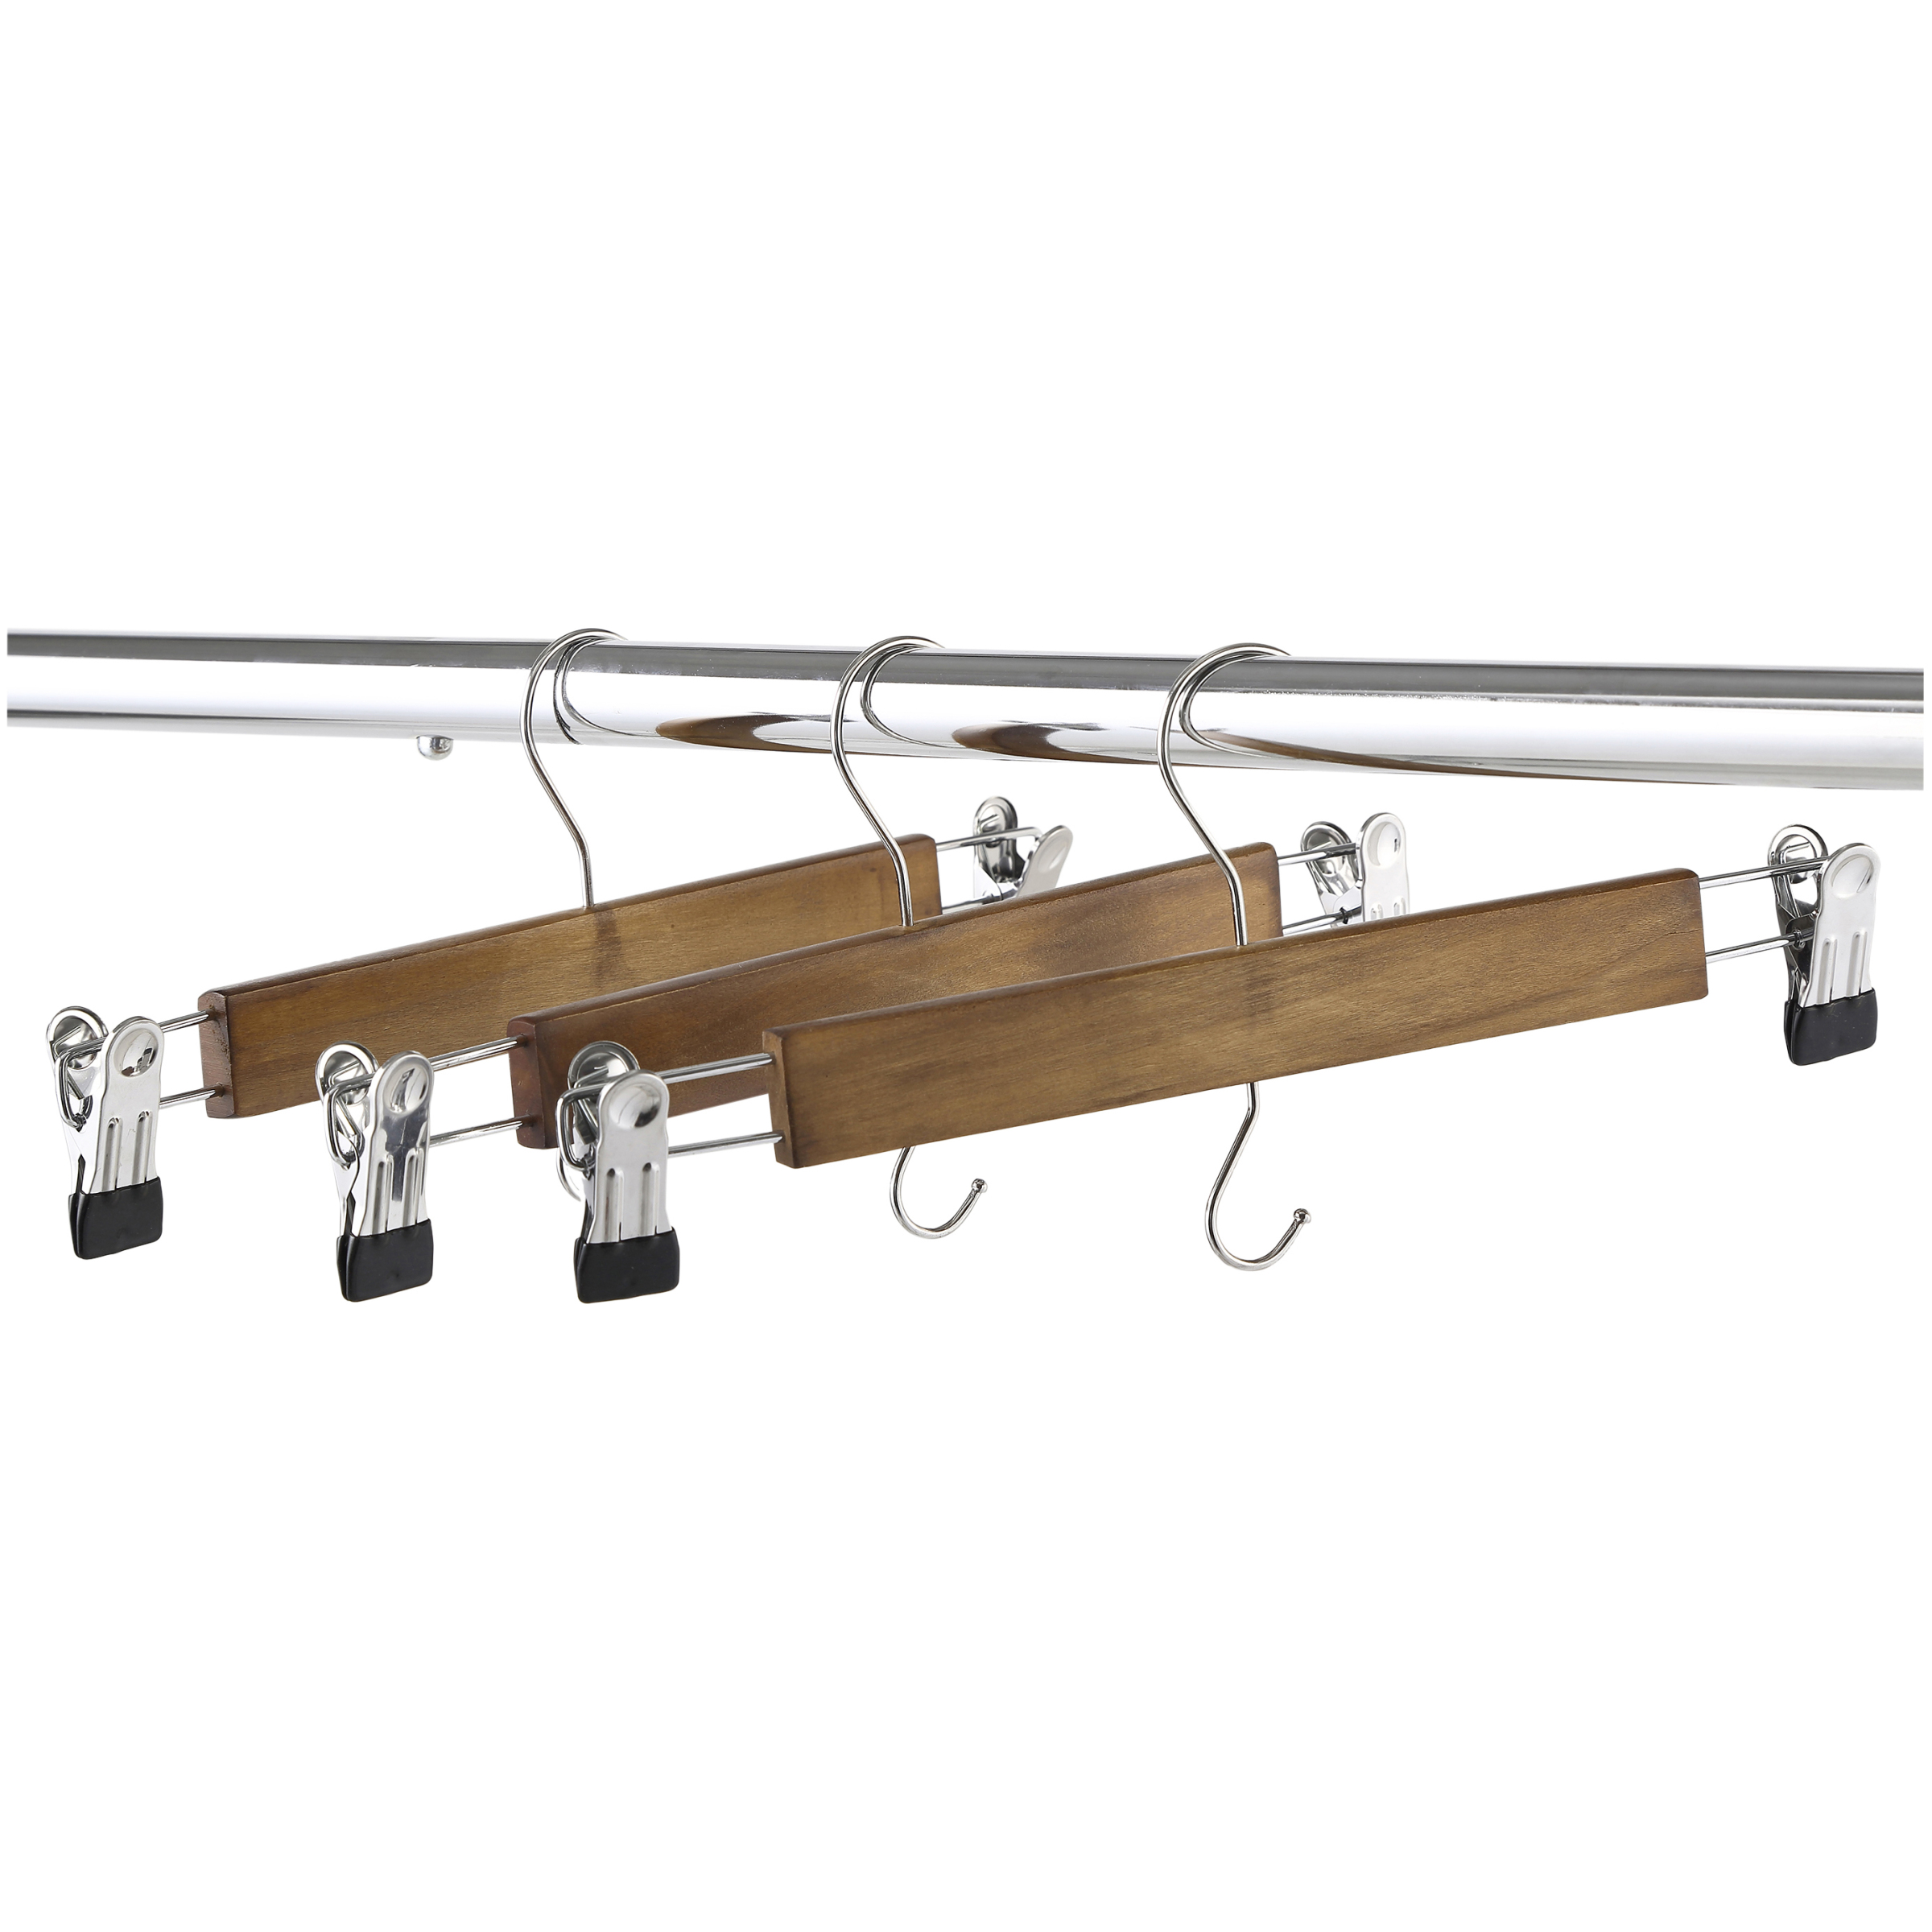 Better Homes & Gardens Walnut Finish Solid Wood Pant & Skirt Hangers, 36 Count